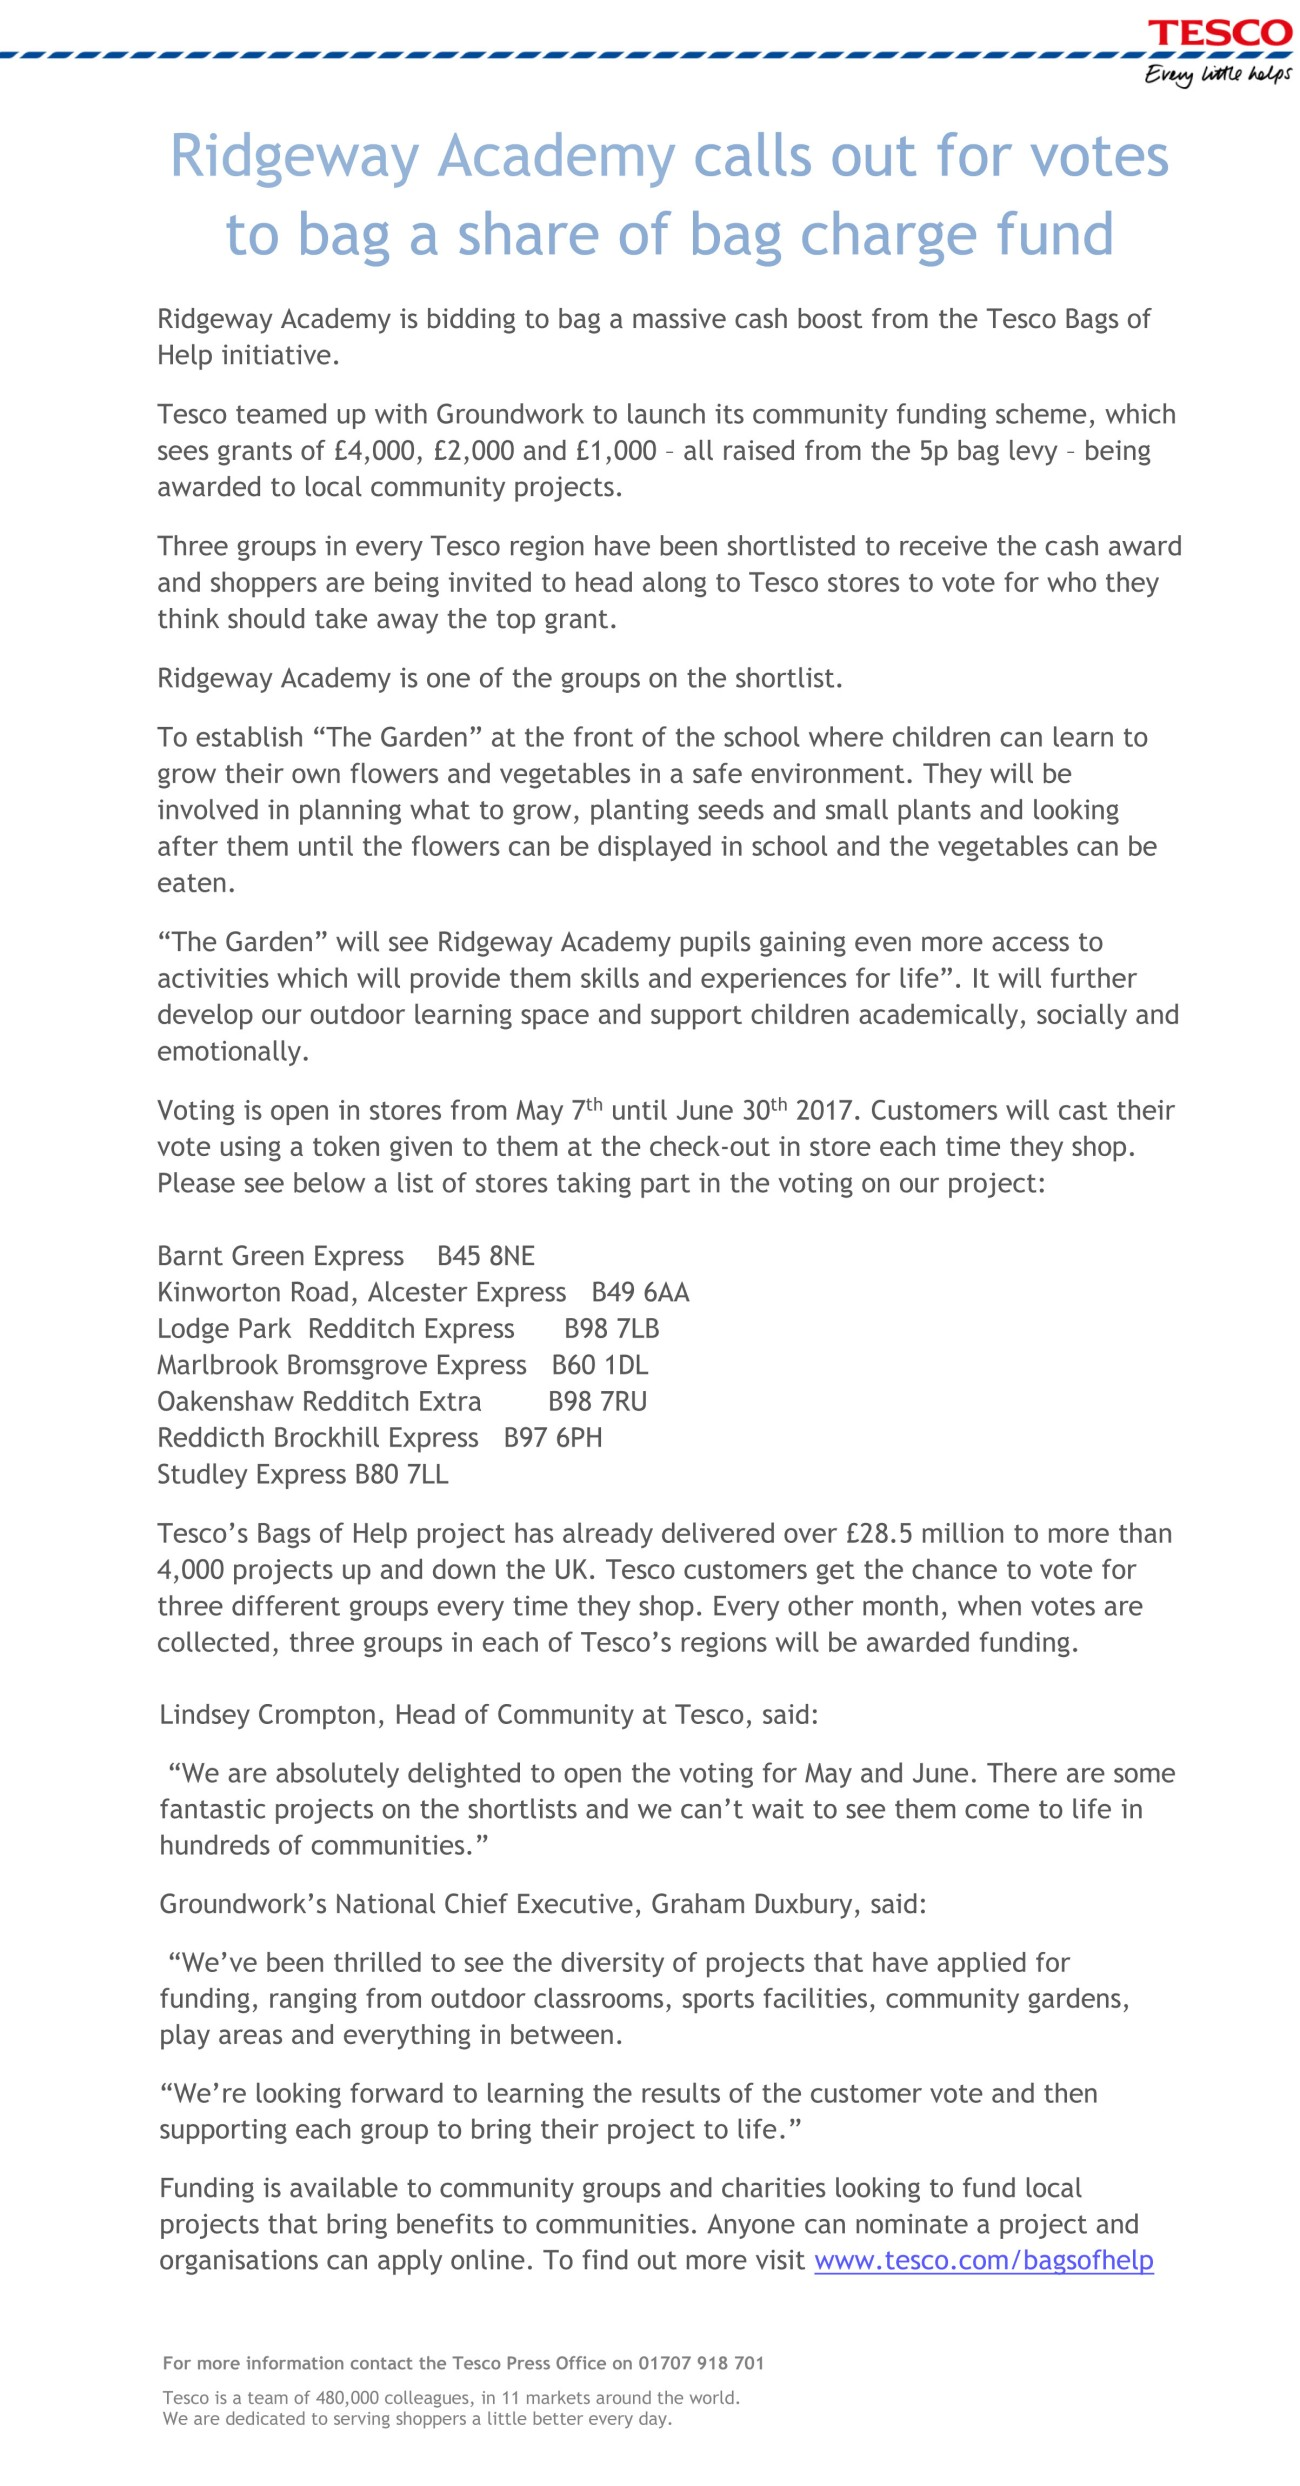 Bags_of_Help_(England_and_Wales)_Tier1_-_voting_opens_MayJune_2017_(002) press statement-1